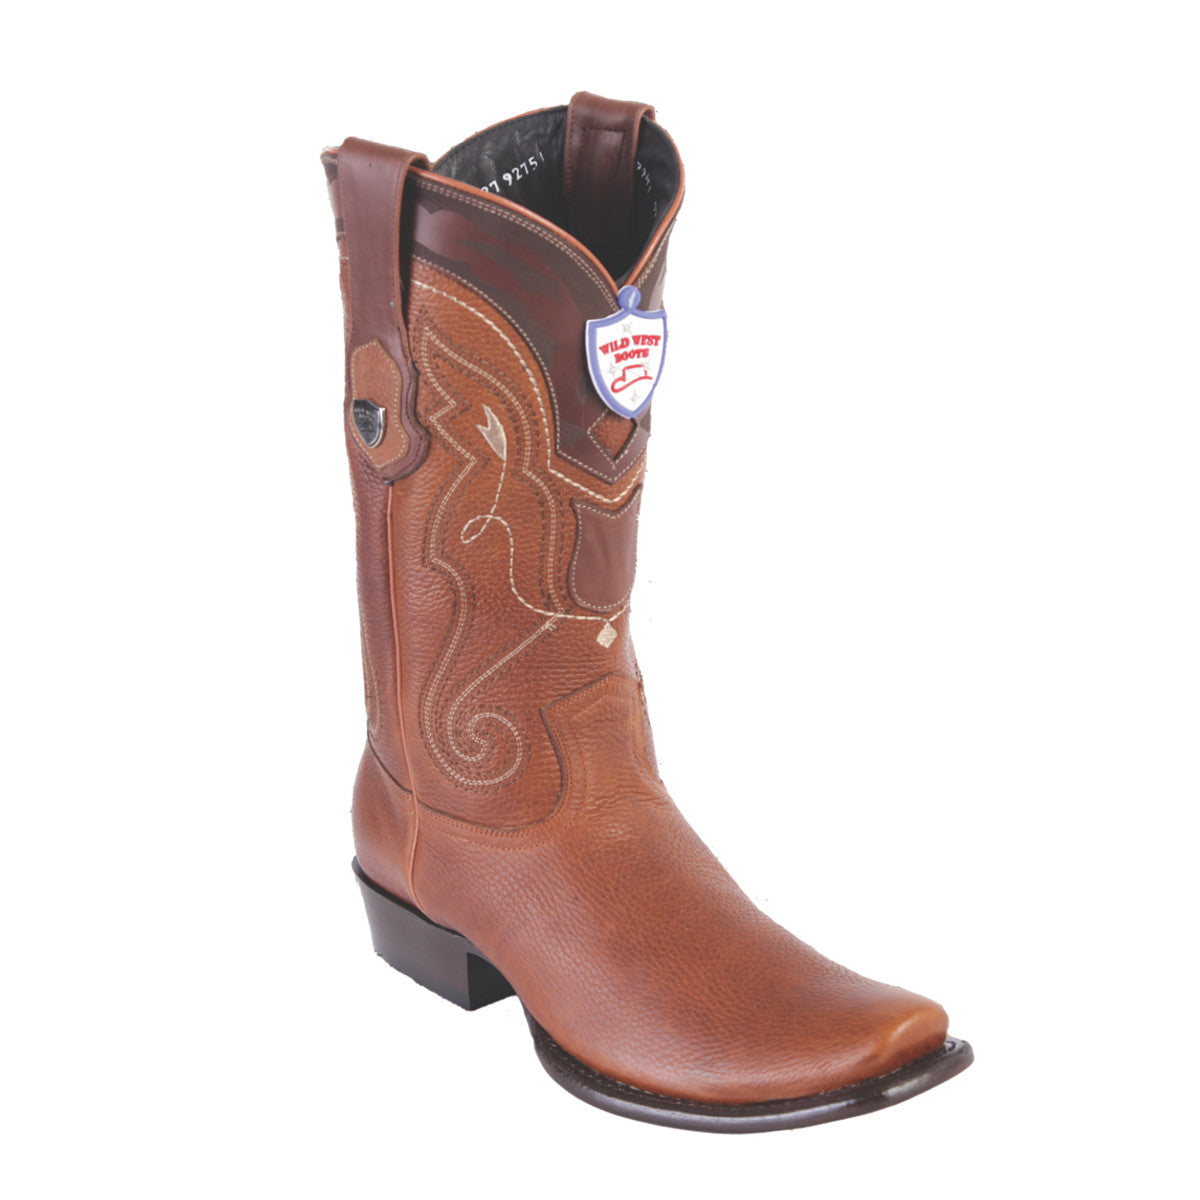 Wild West Boots Dubai Boot Grisly